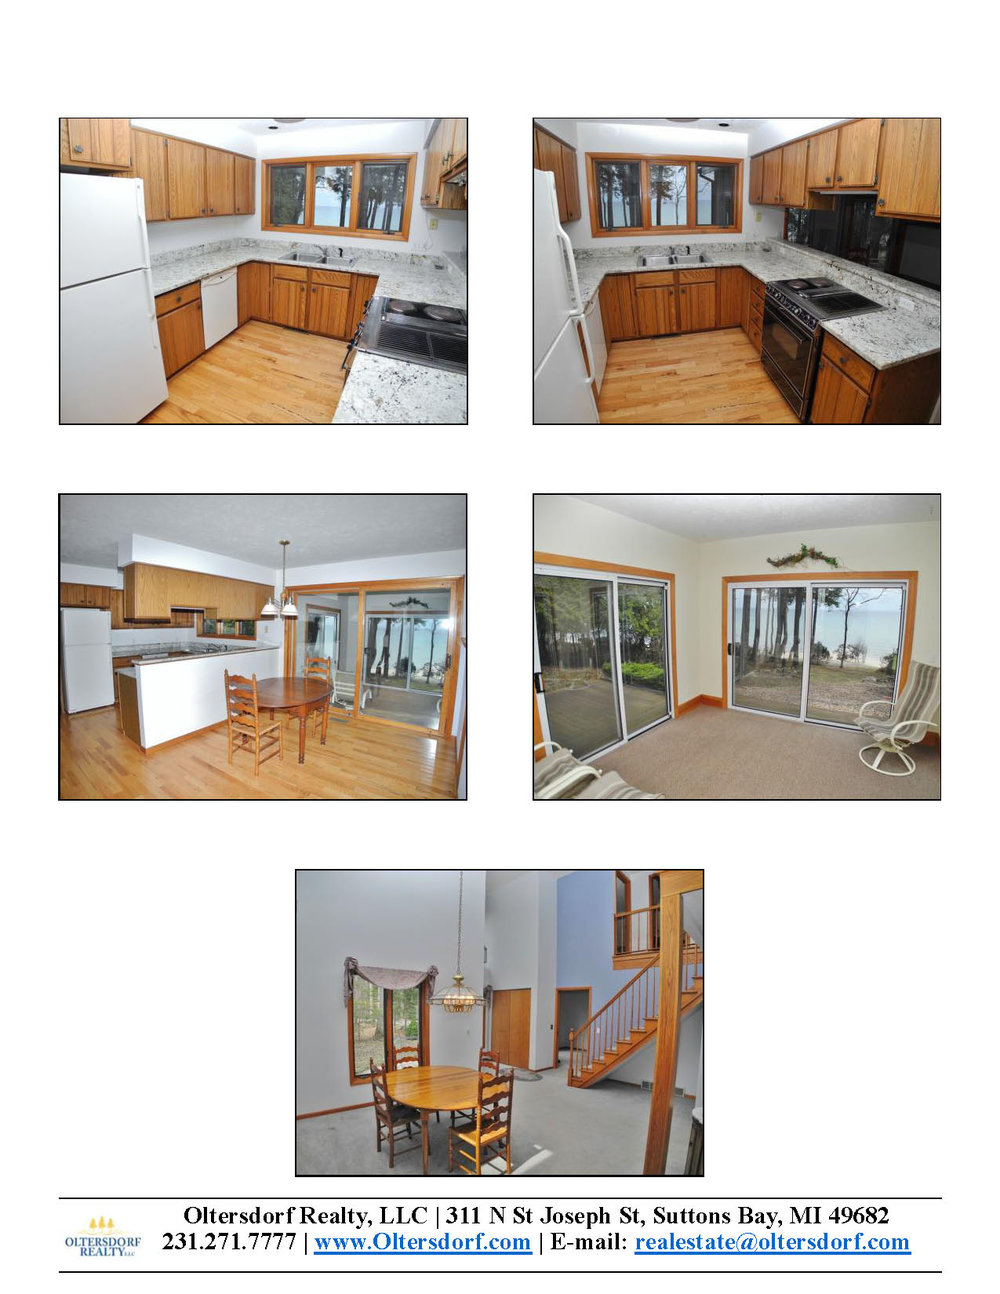 5290 N Omena Point Road, Omena, MI – 100' of Private Frontage on Grand Traverse Bay for sale by Oltersdorf Realty LLC (5) - Marketing Packet.jpg